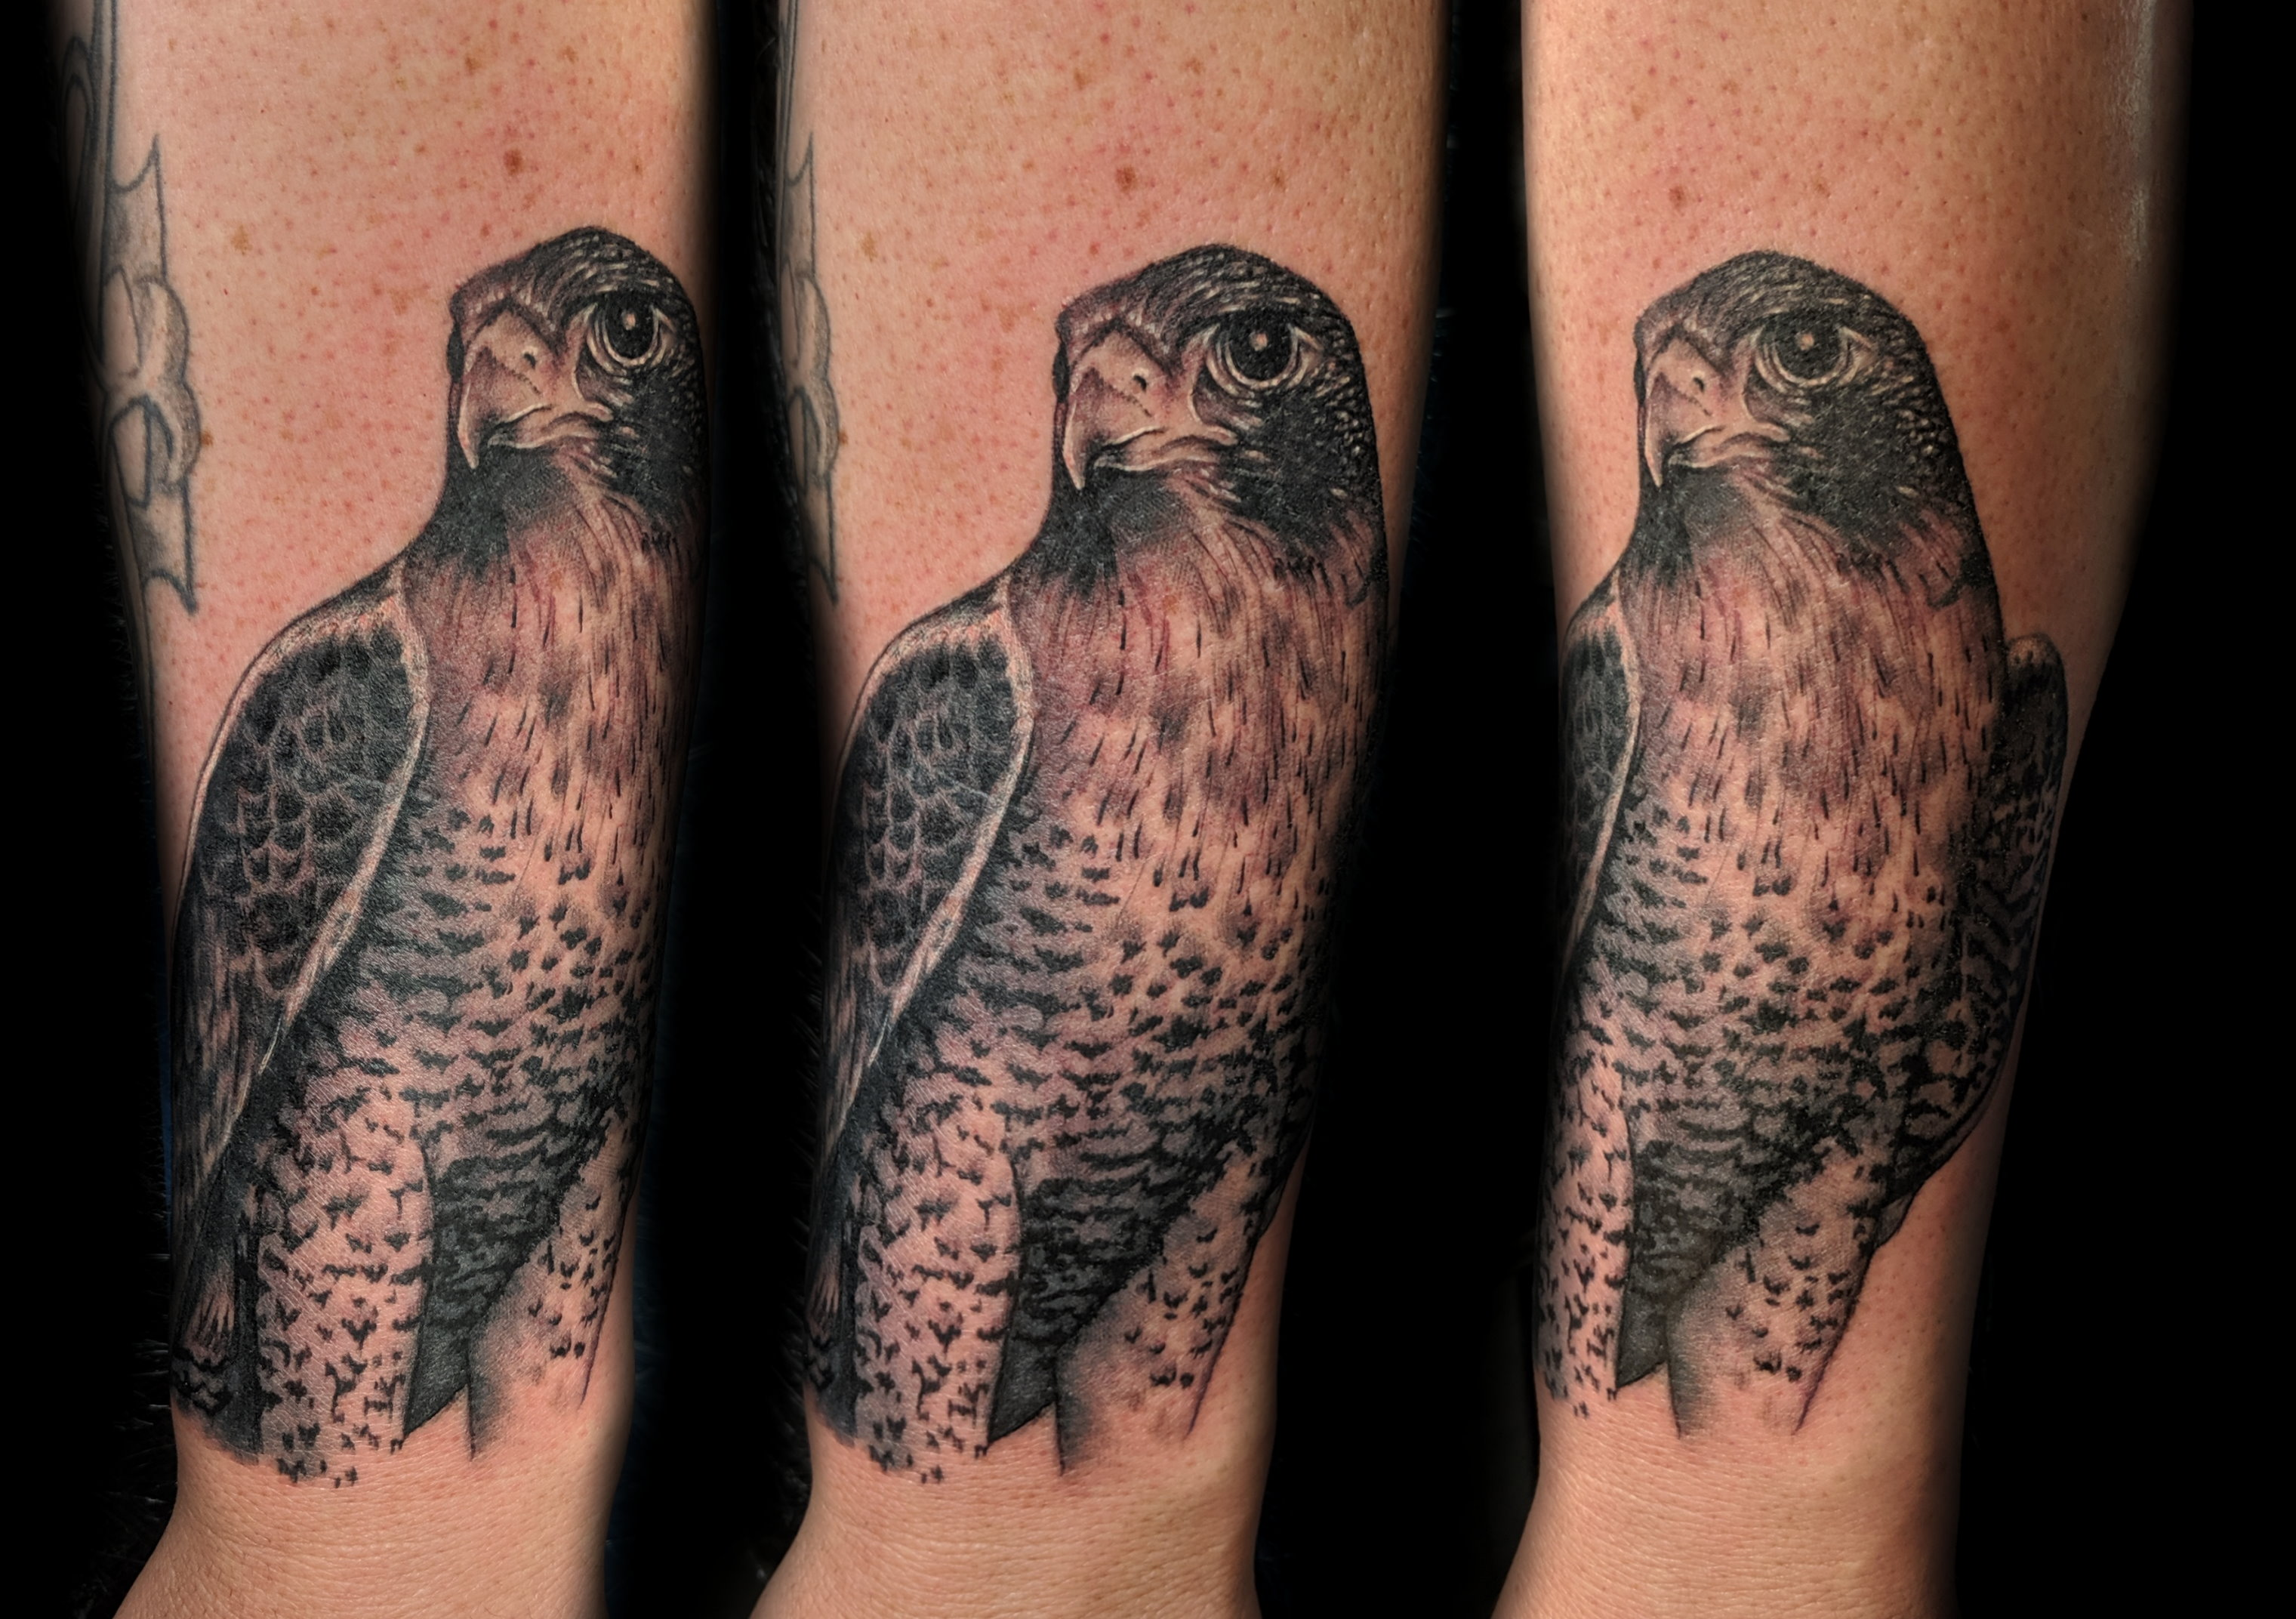 bird - paragrin falcon - left forearm3